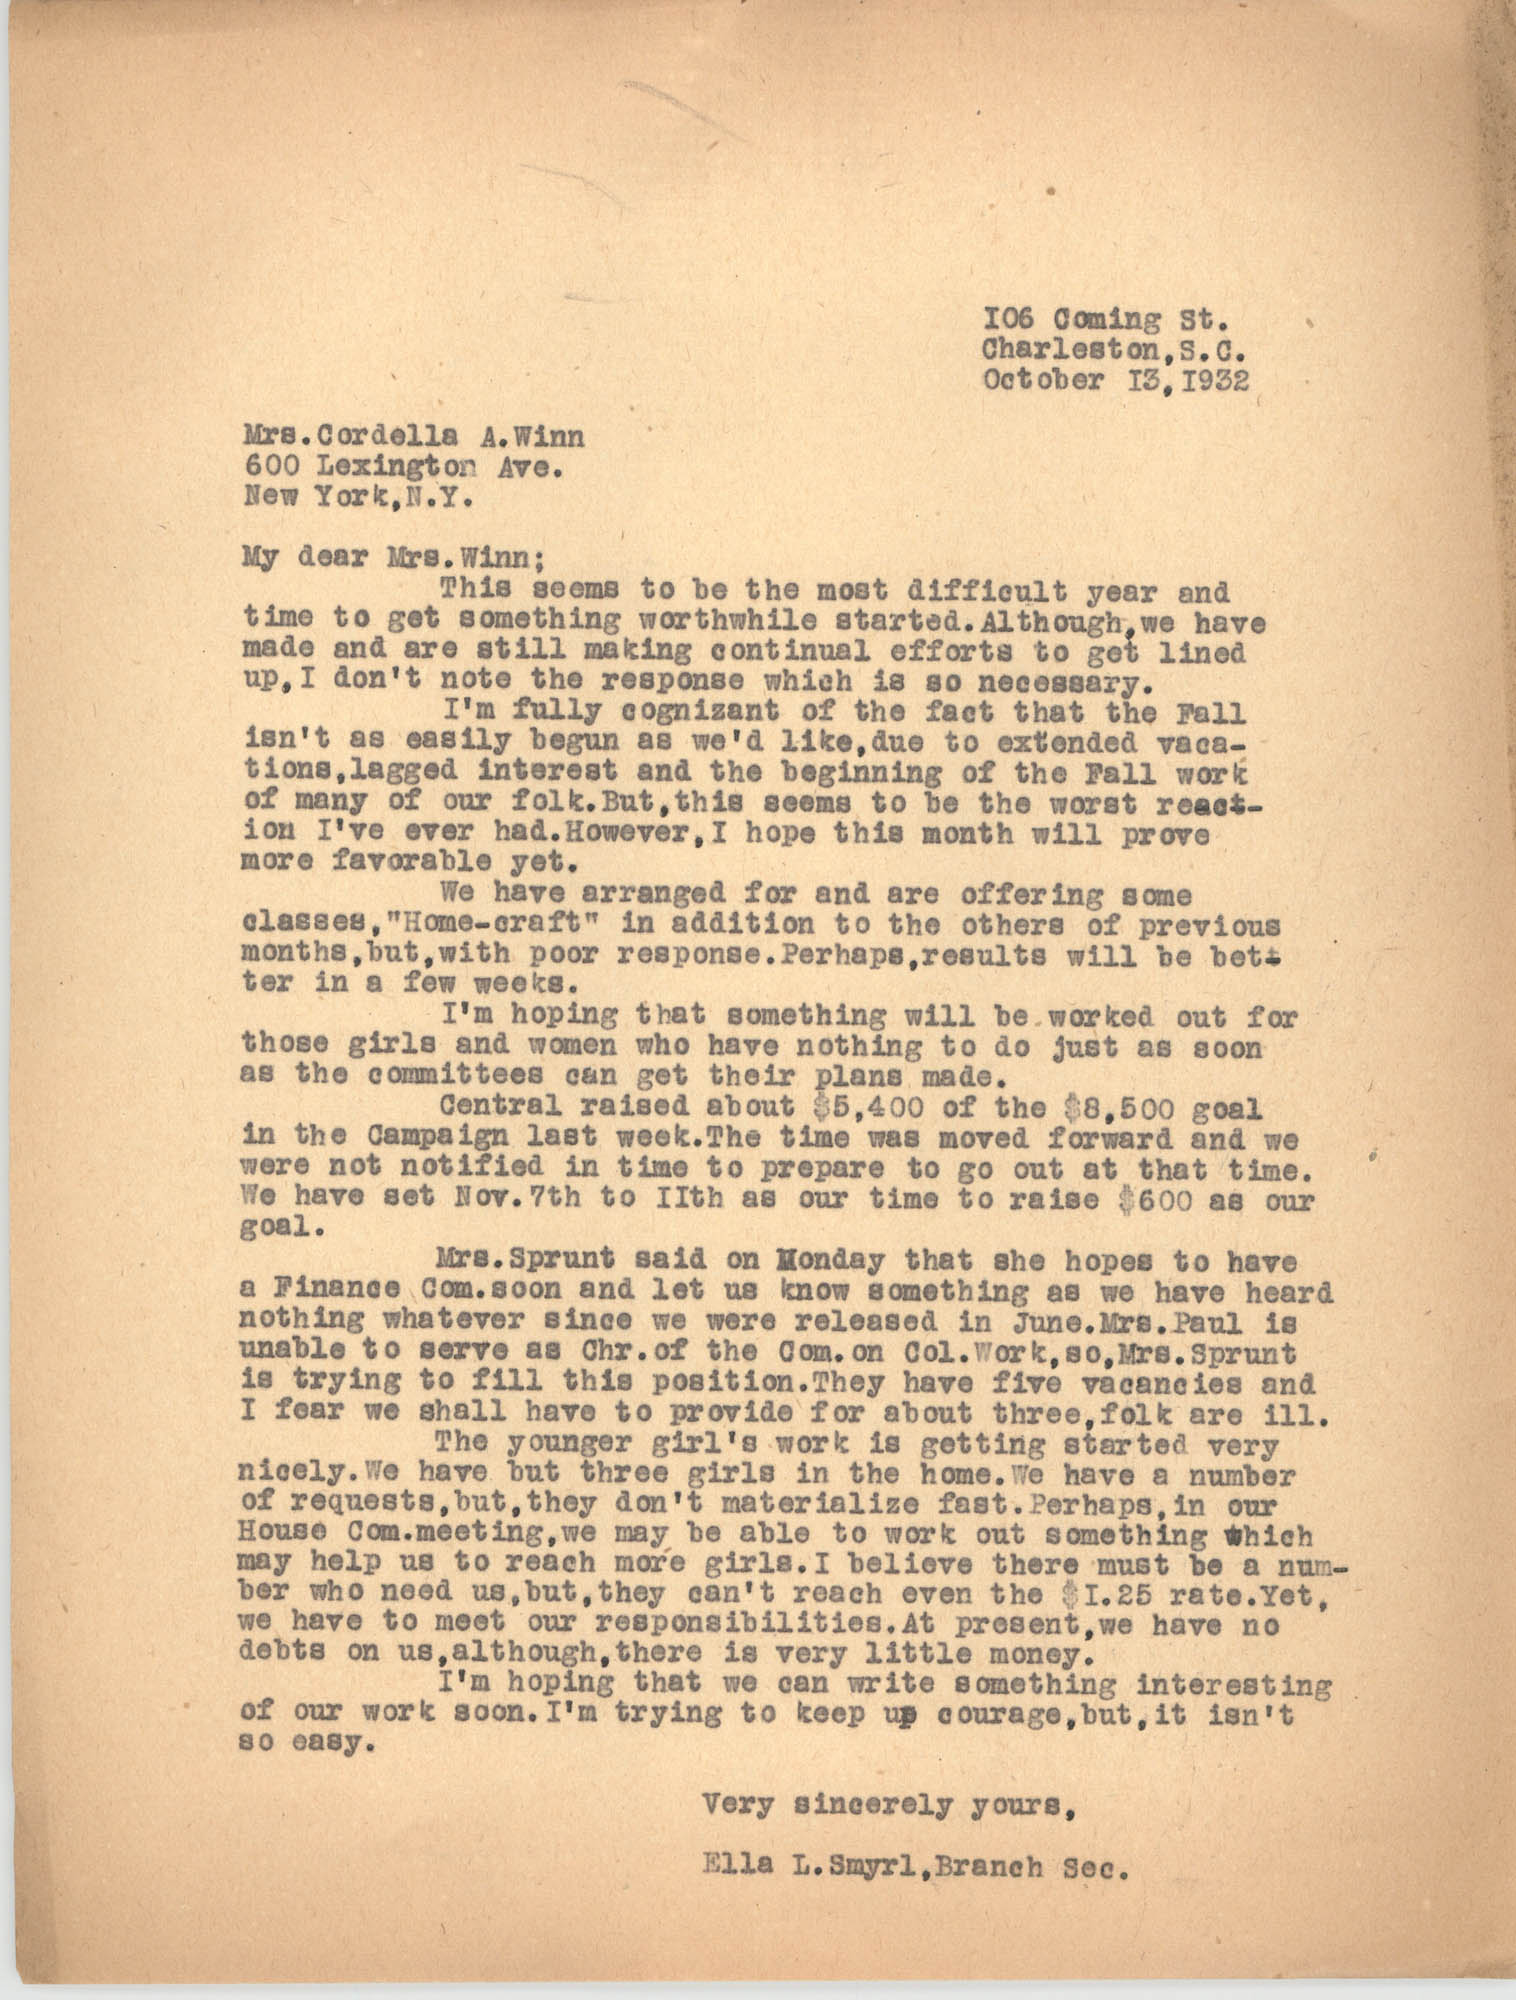 Letter from Ella L. Smyrl to Cordella A. Winn, October 13, 1932